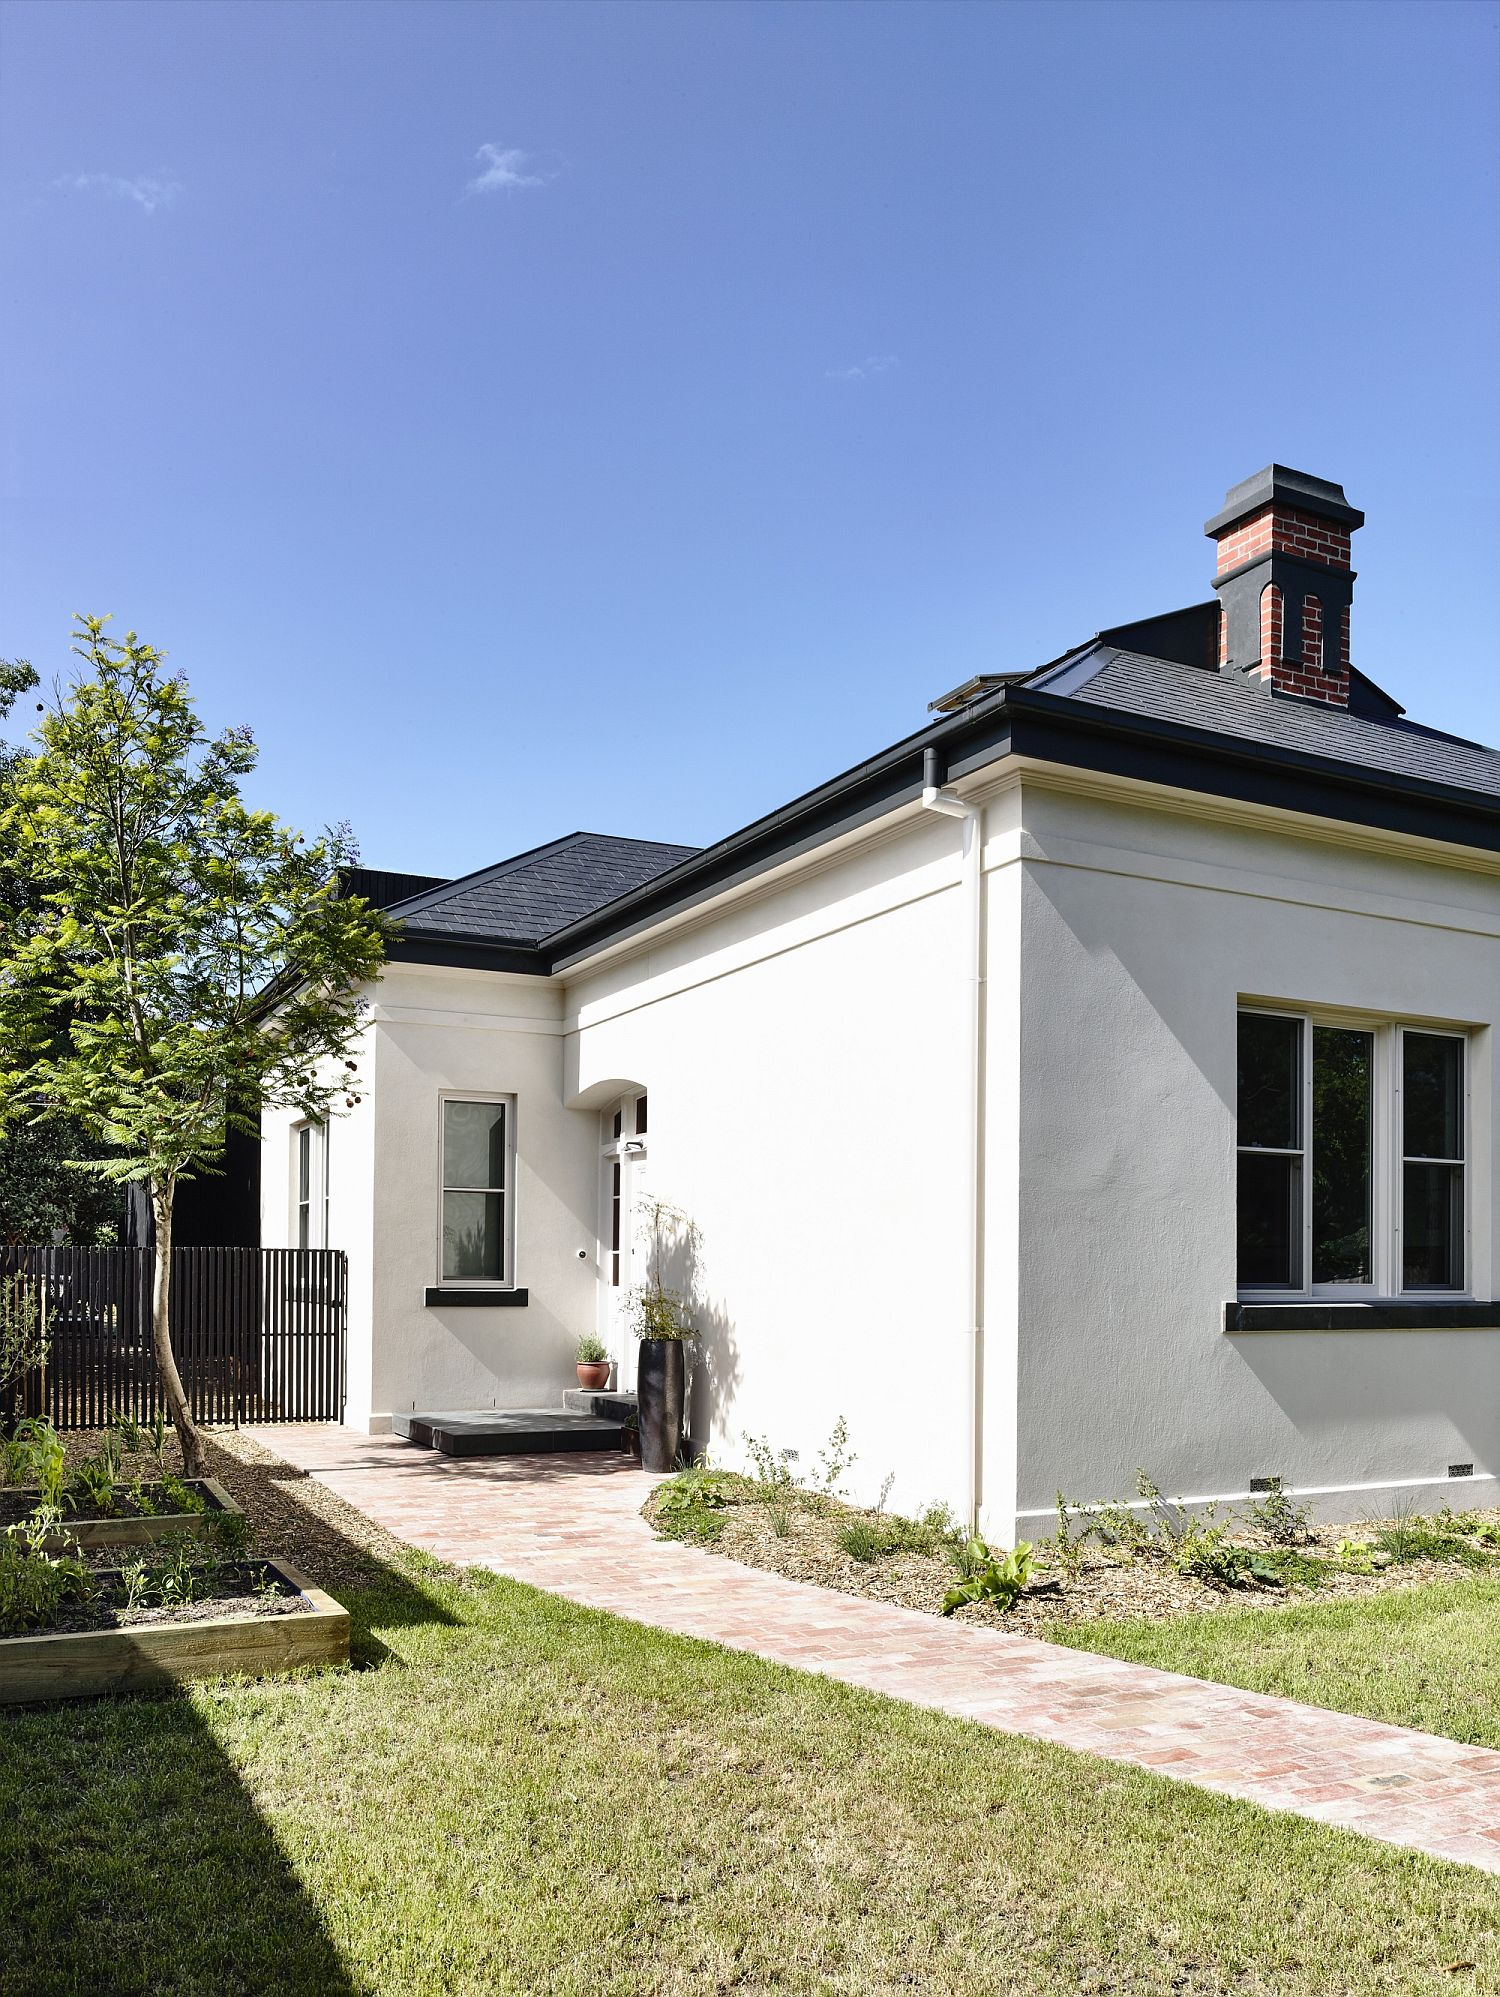 Traditional exterior of the old Victorian home